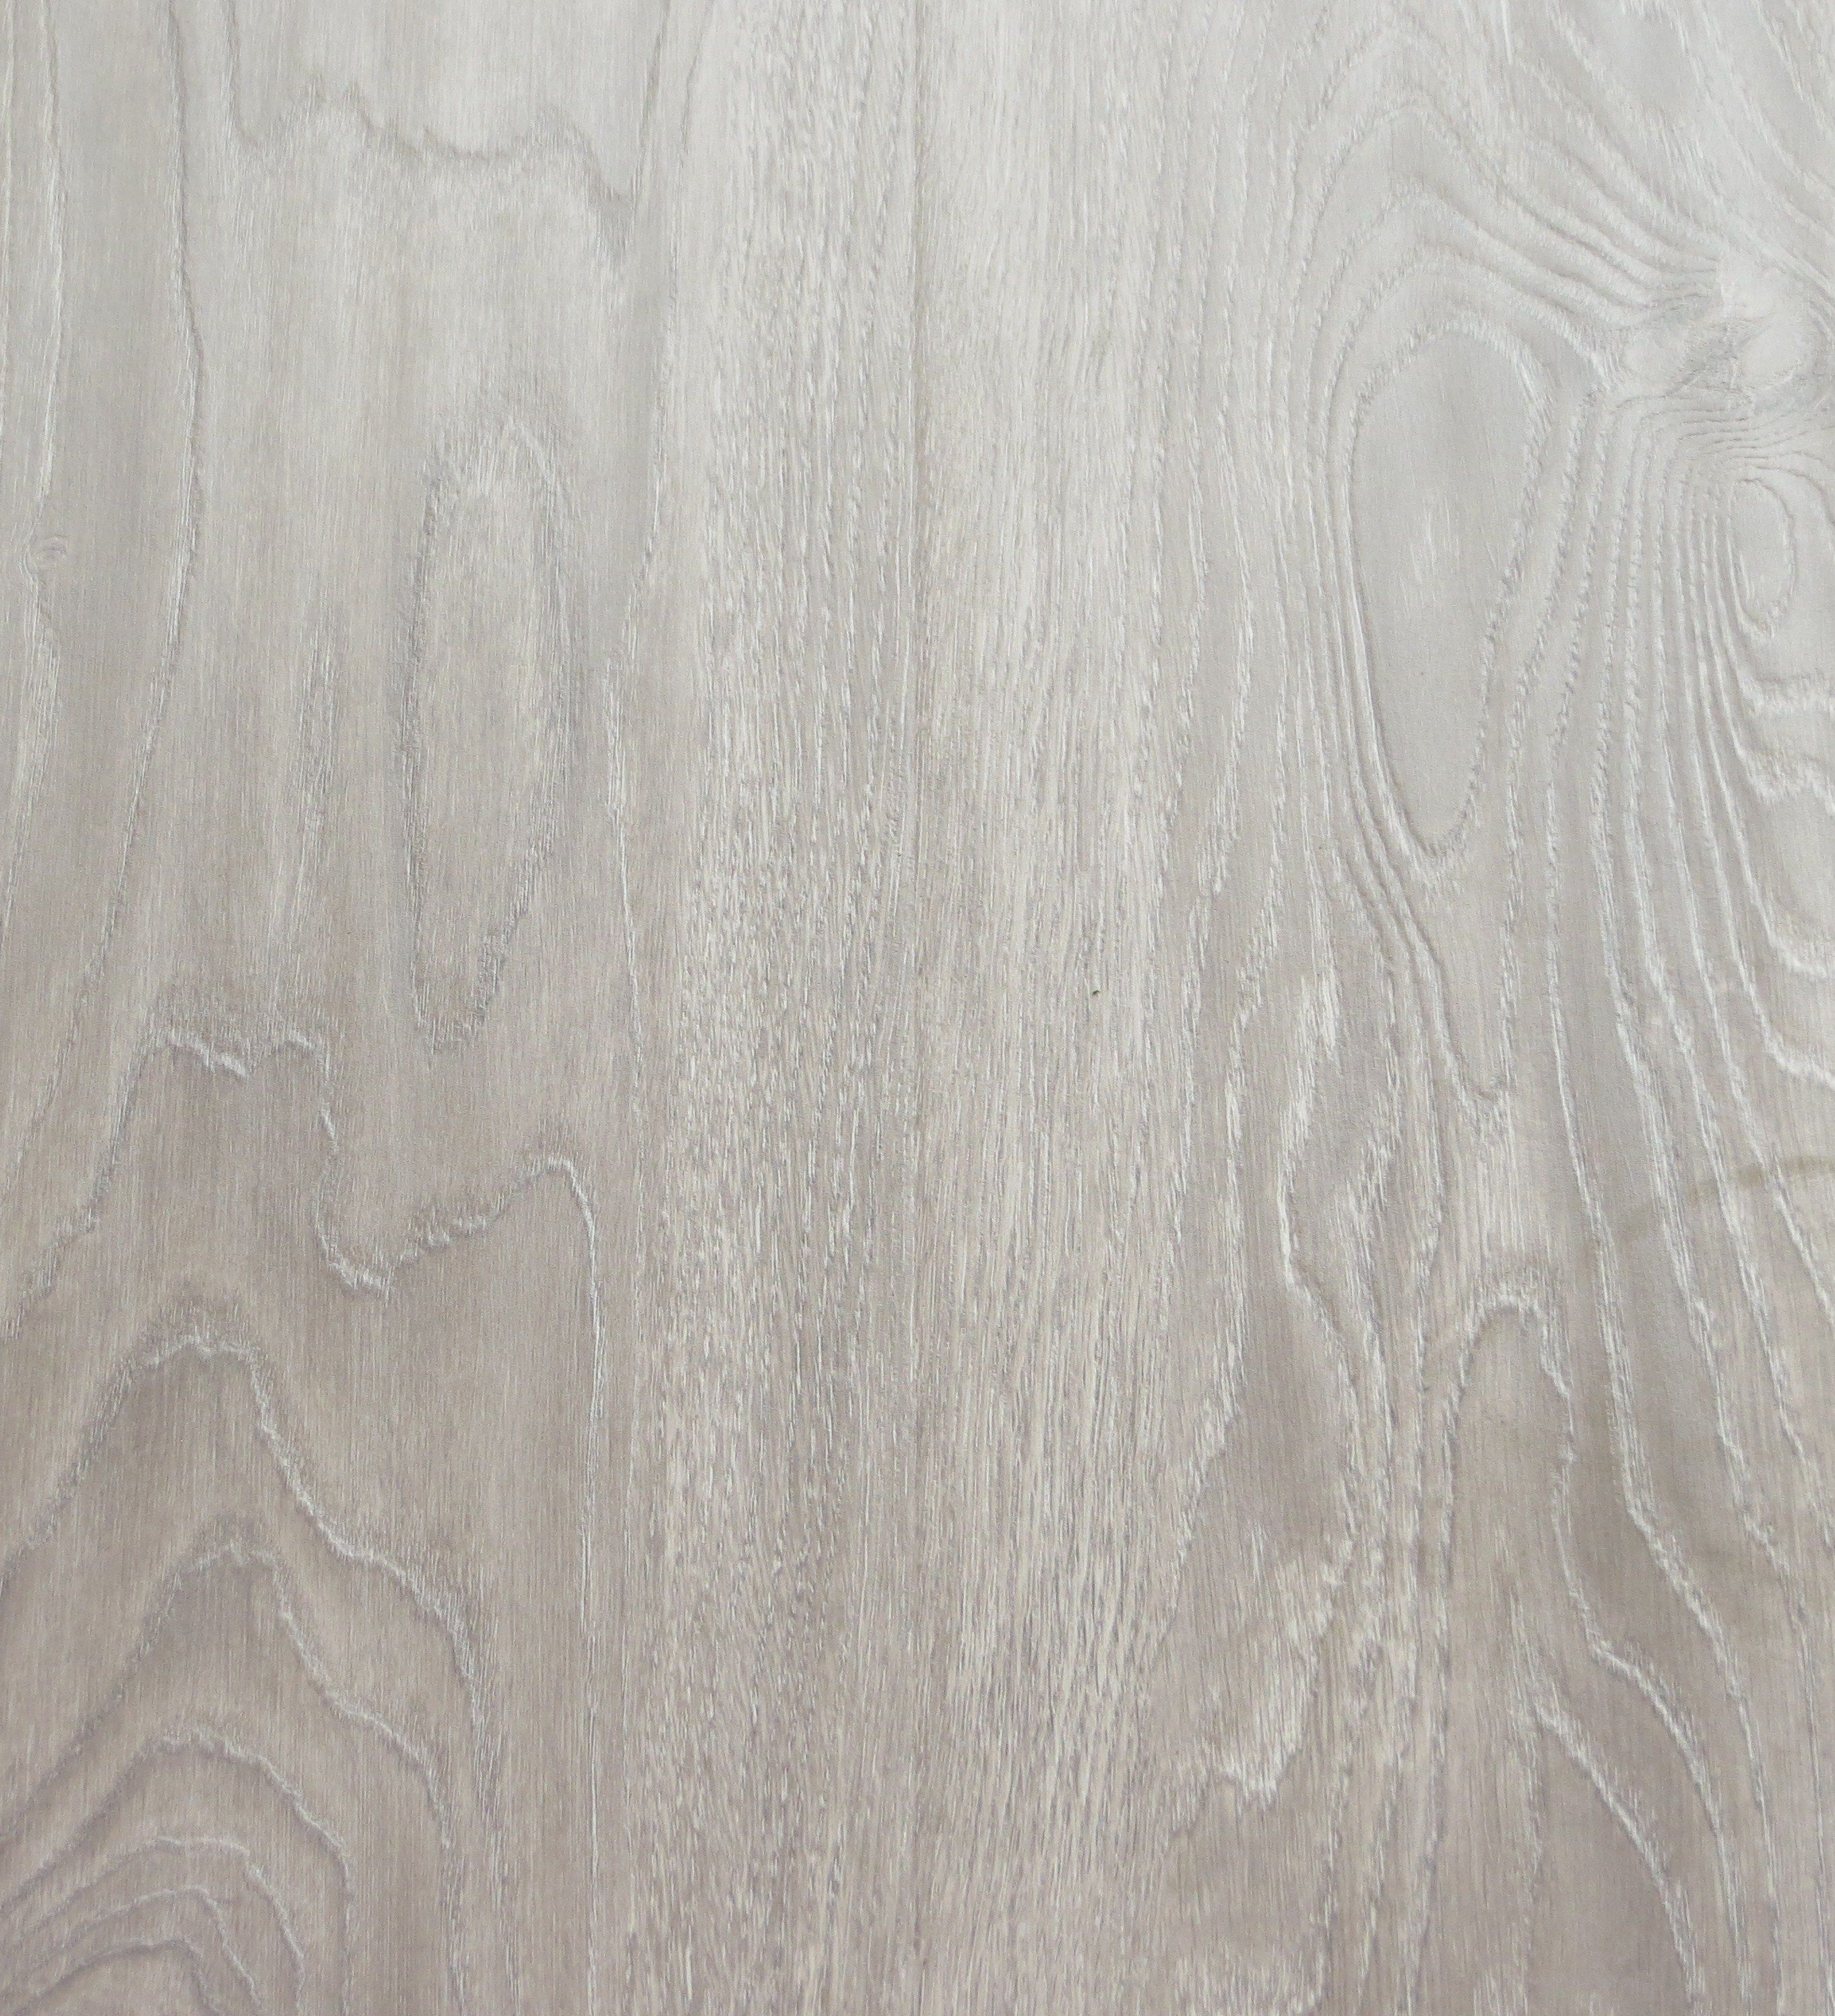 Crystaline laminate by simplefloors the white washed look White washed wood flooring